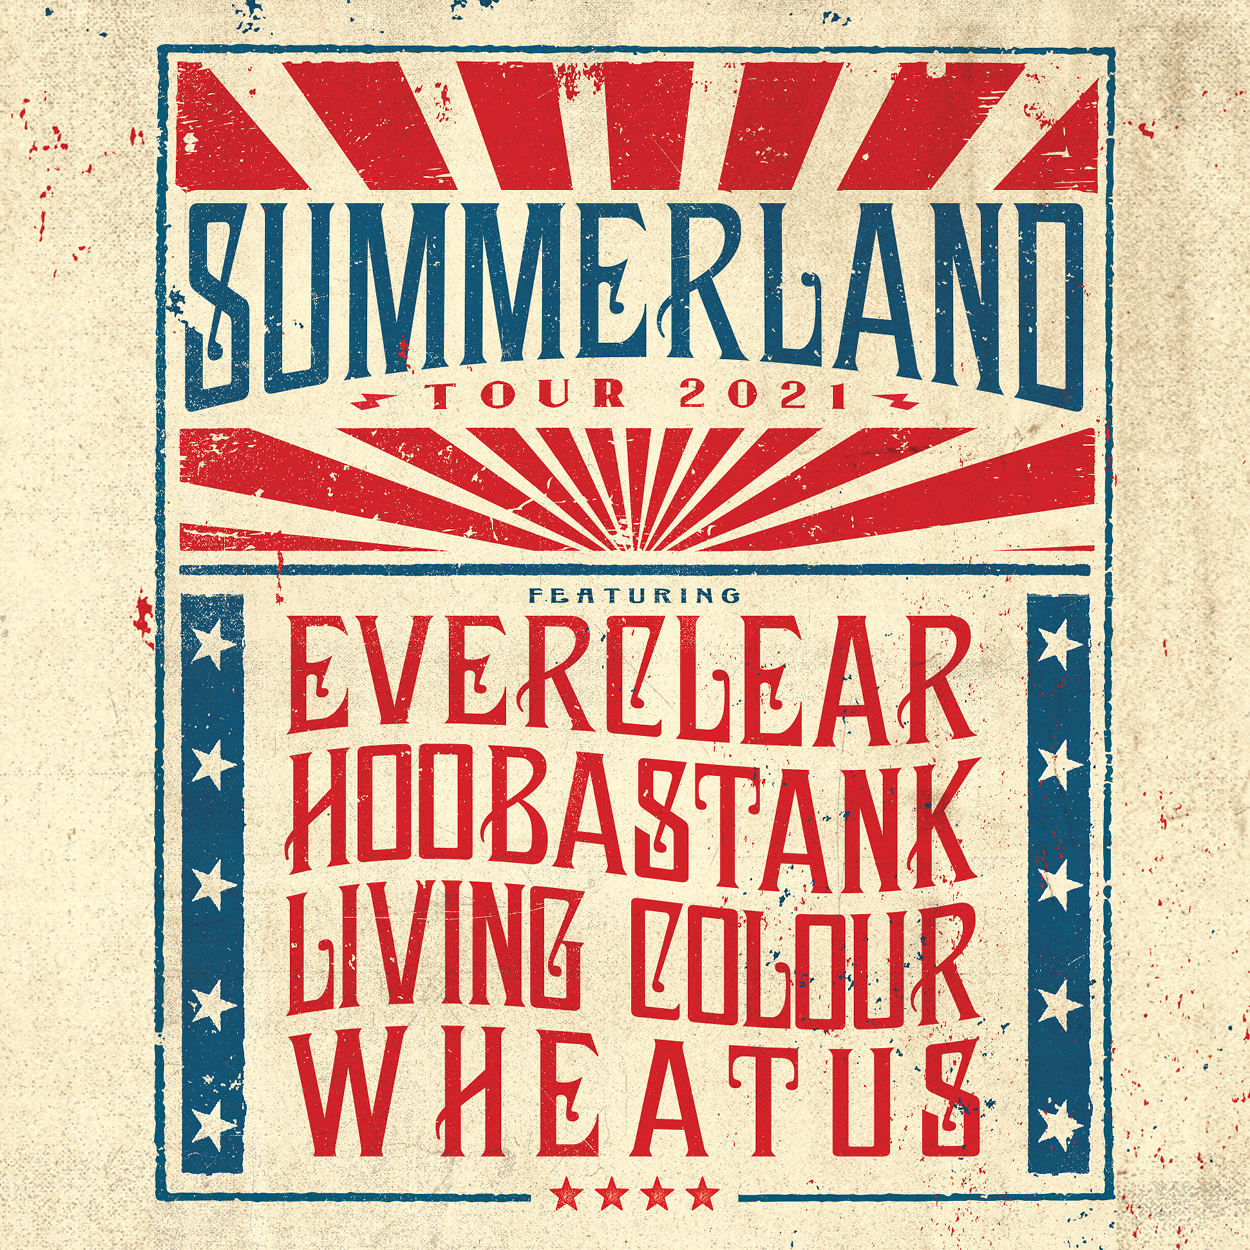 Summerland Tour 2021 featuring Everclear, Hoobastank, Living Colour and Wheatus